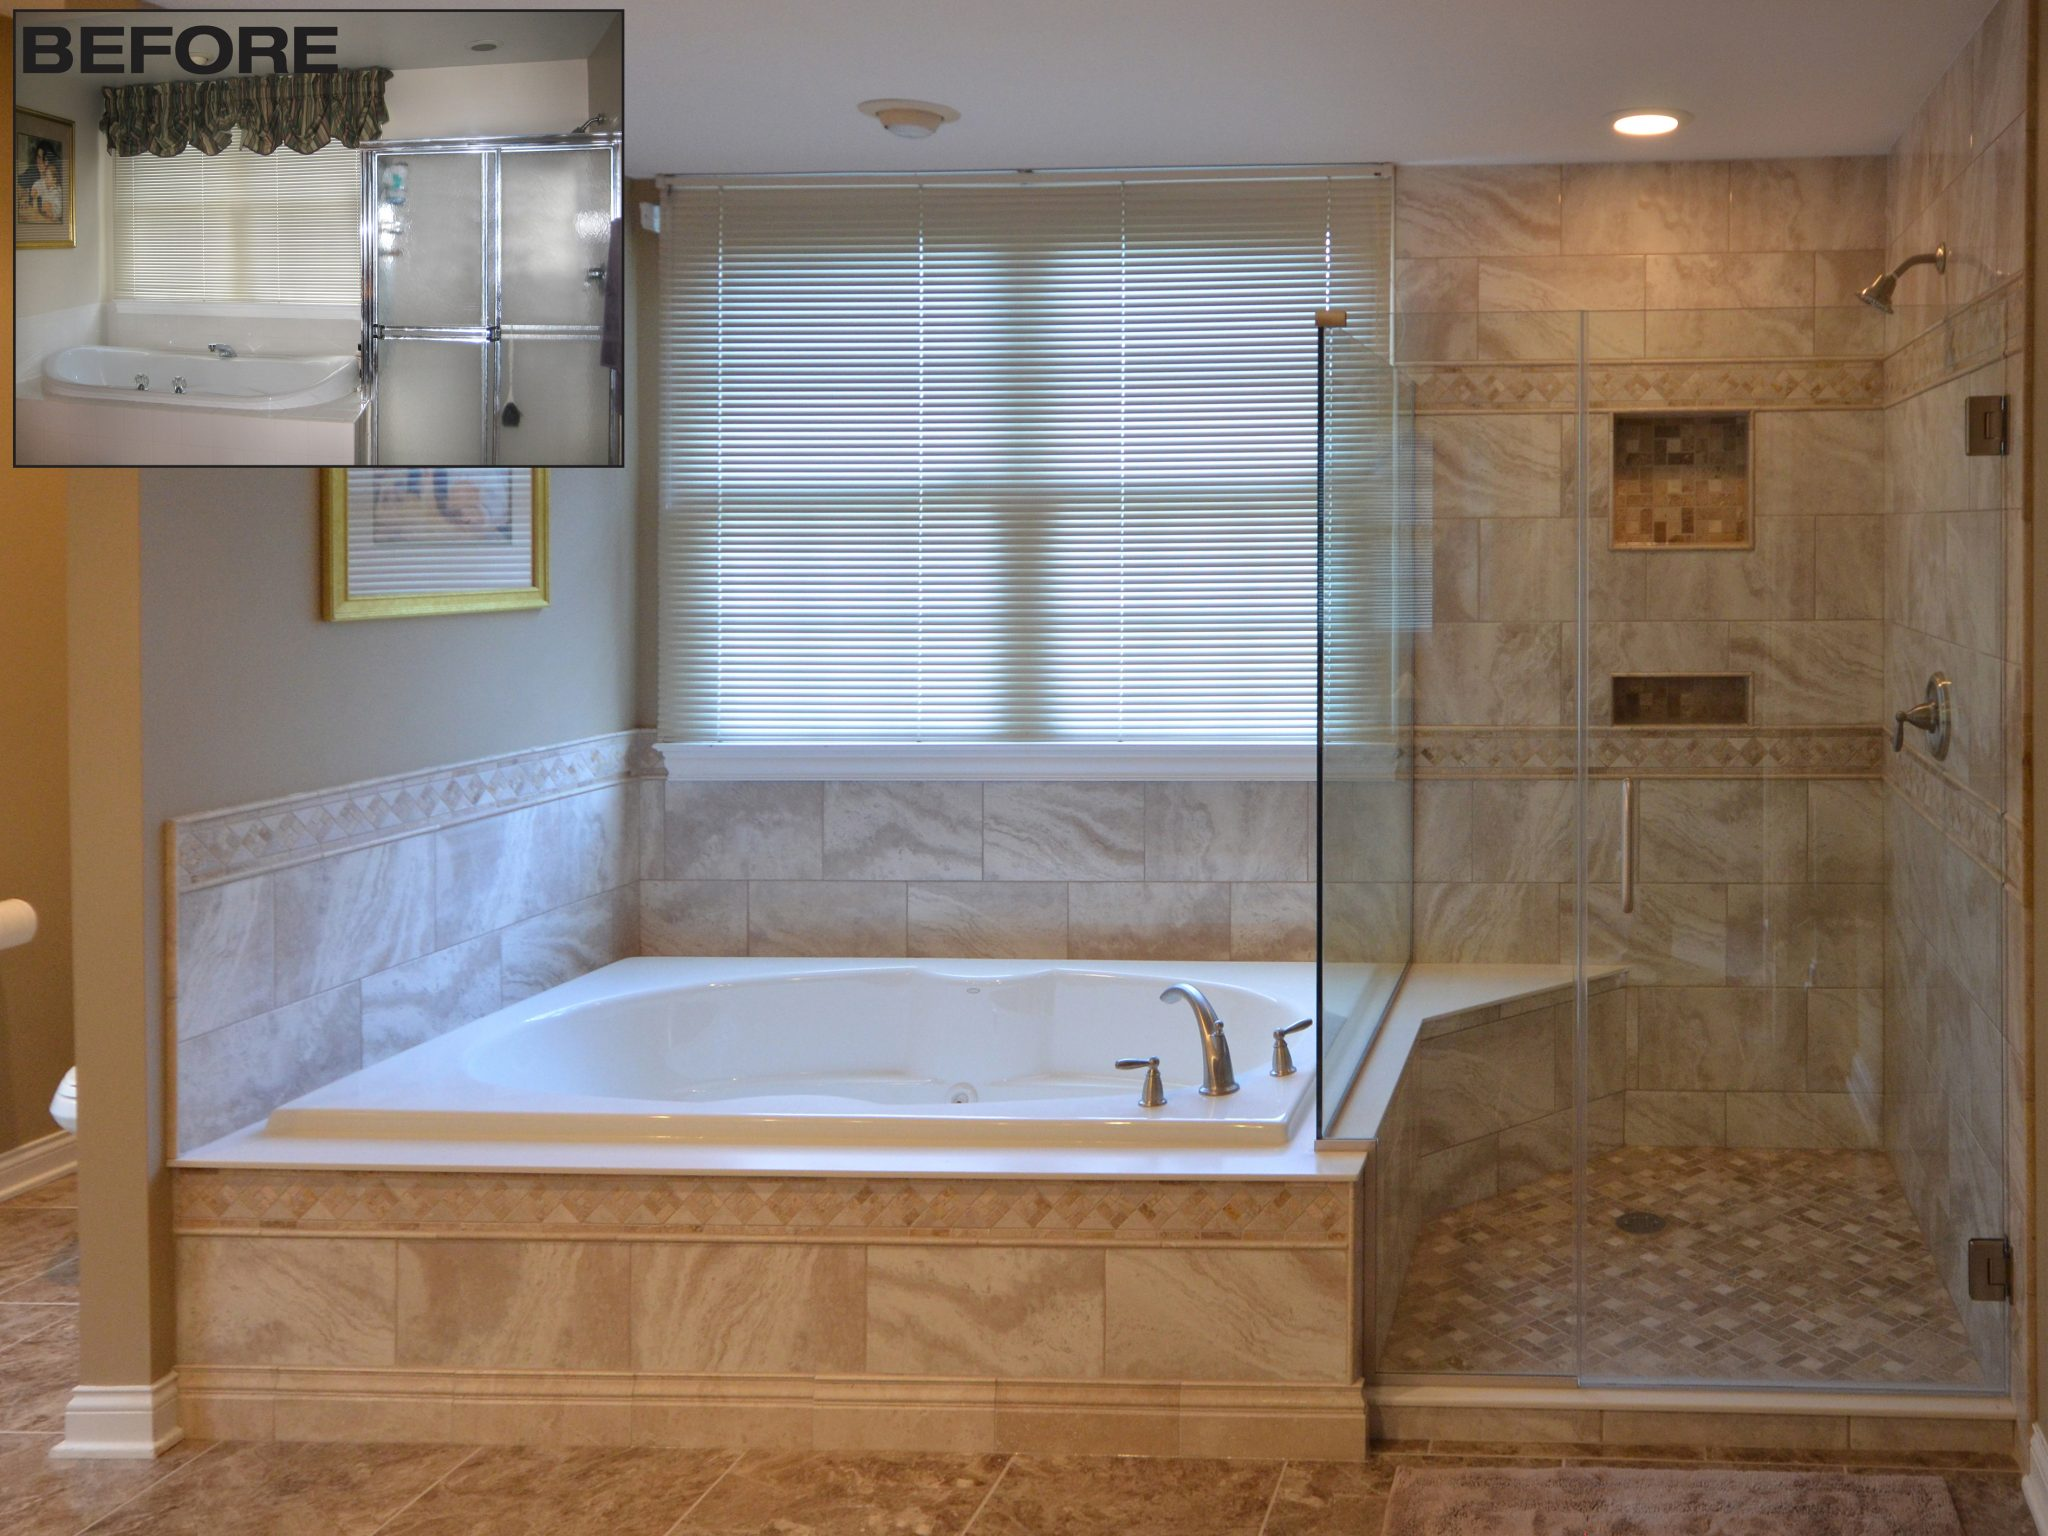 homeowners Archives - Page 9 of 9 - Luxury Bathroom Remodeling - One ...